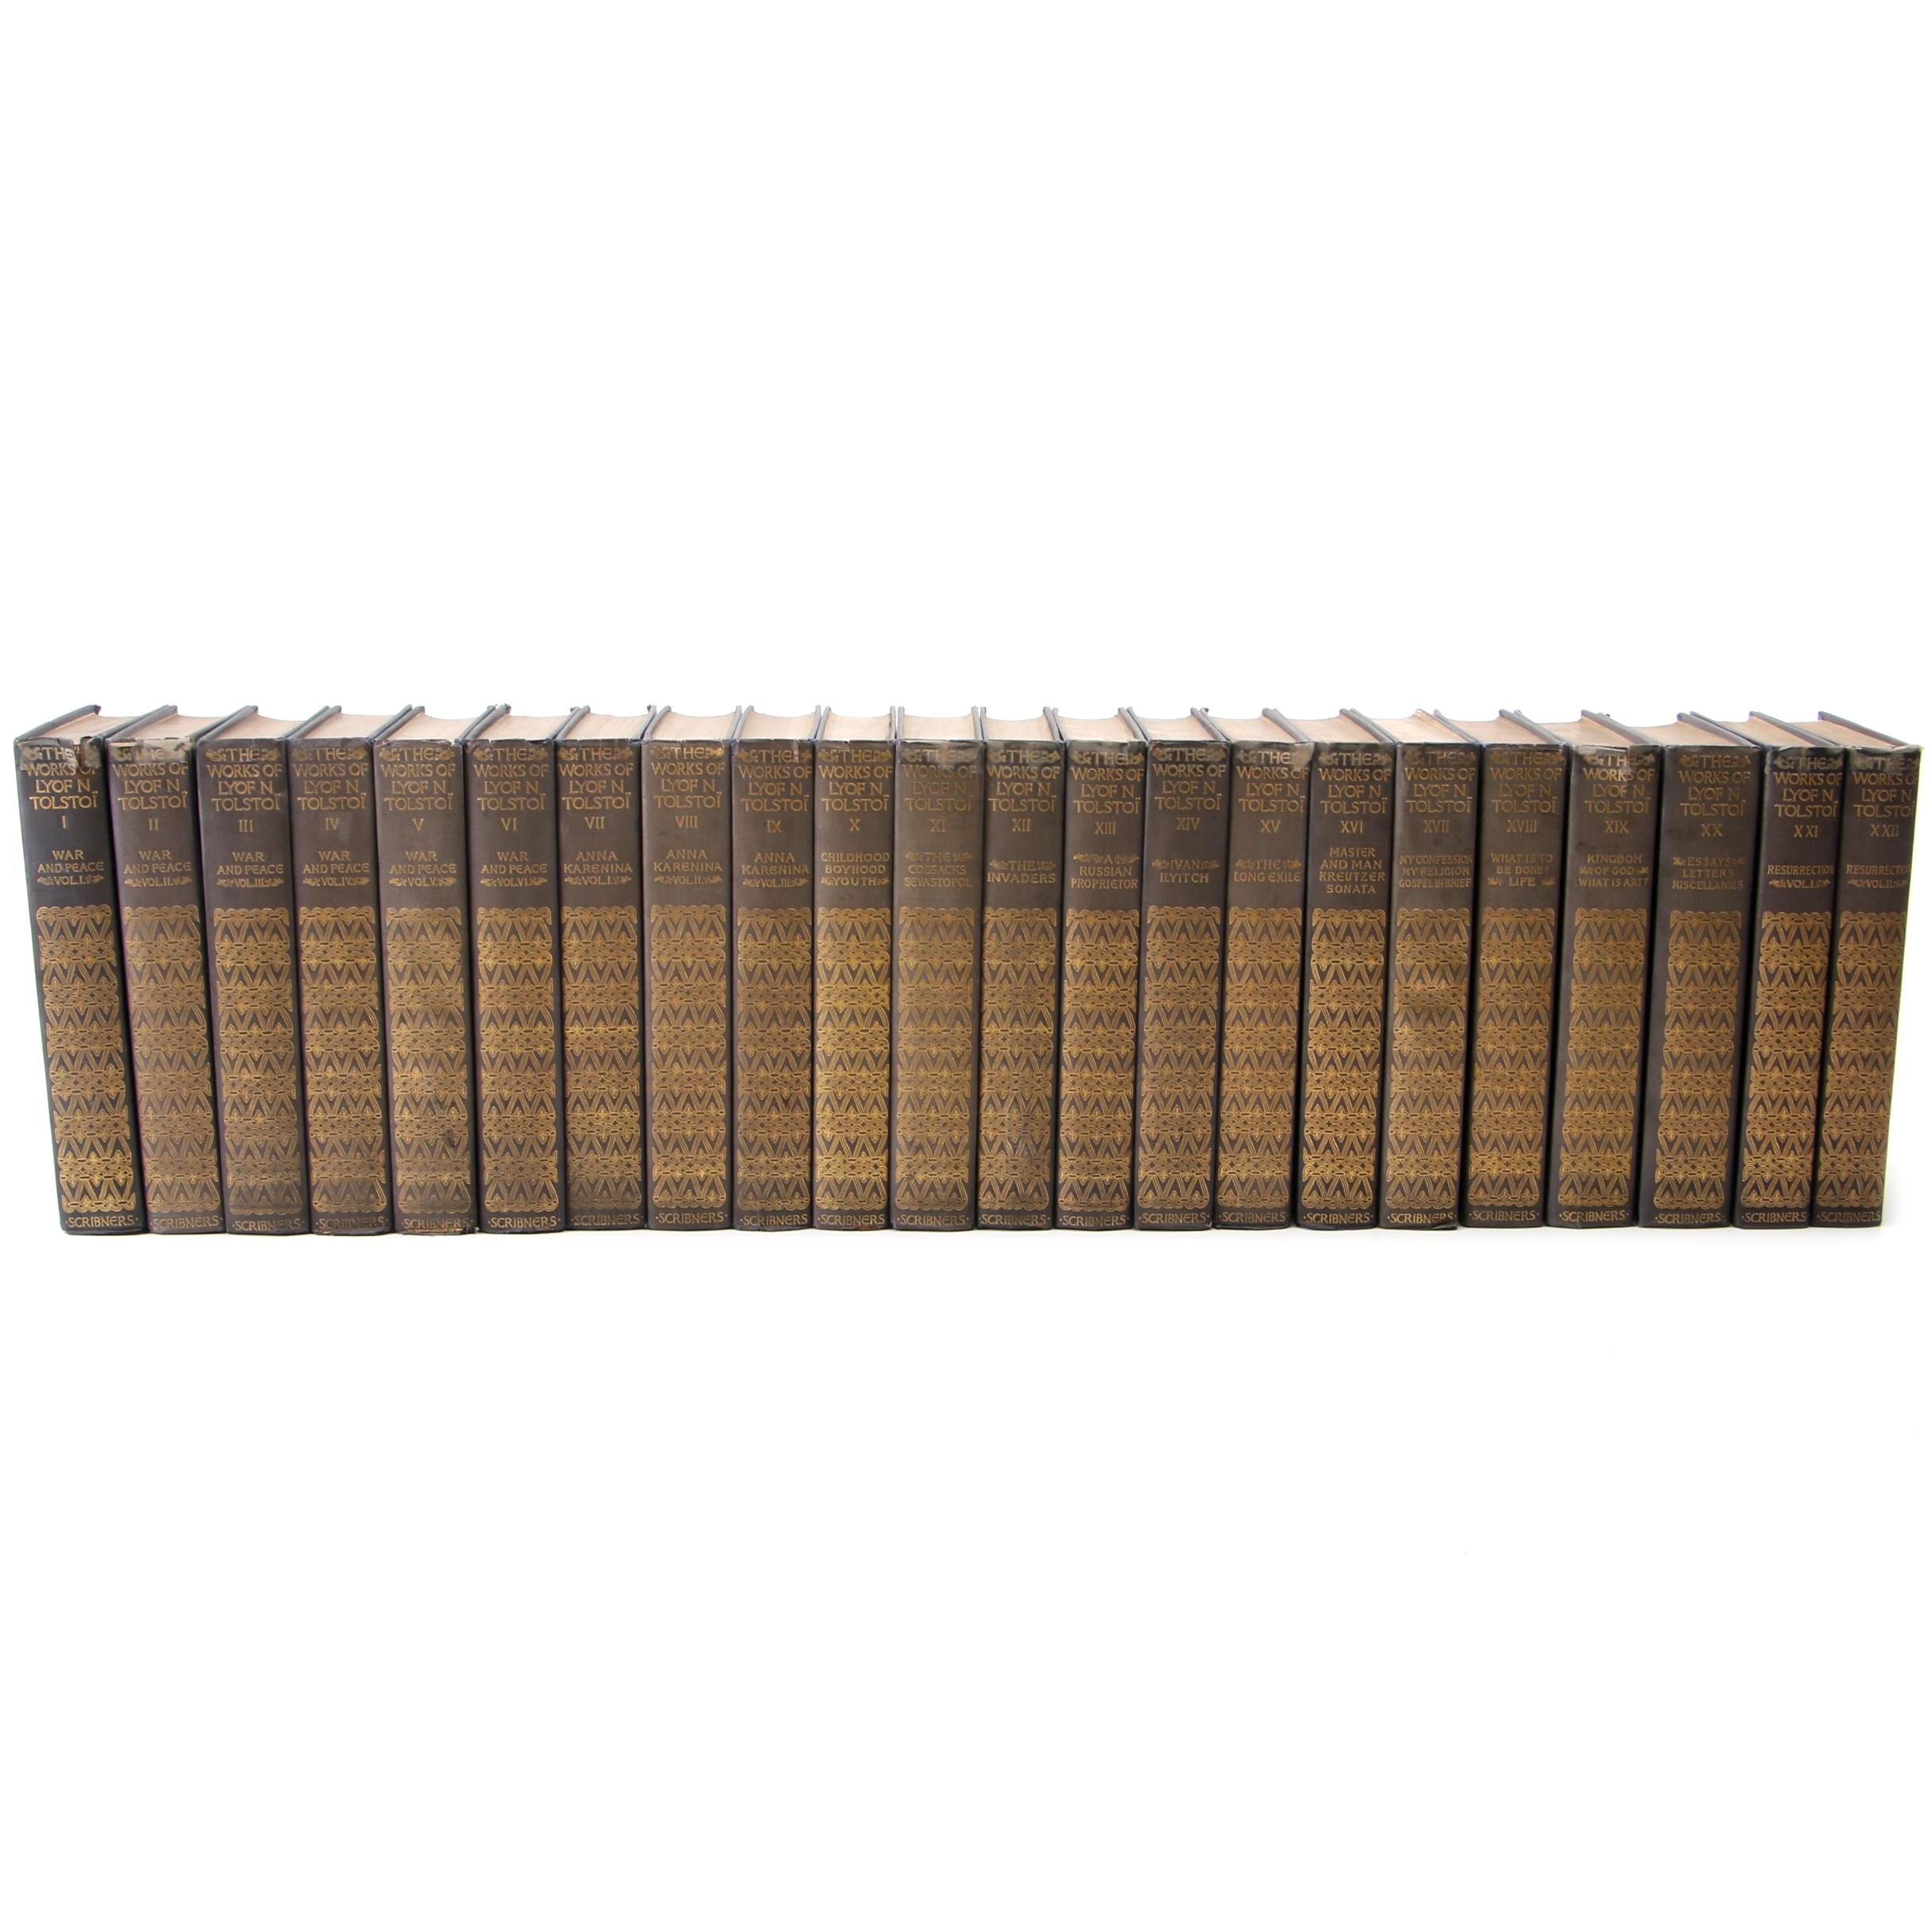 """1899 """"The Novels and Other Works of Lyof N. Tolstoï"""" Complete Set"""